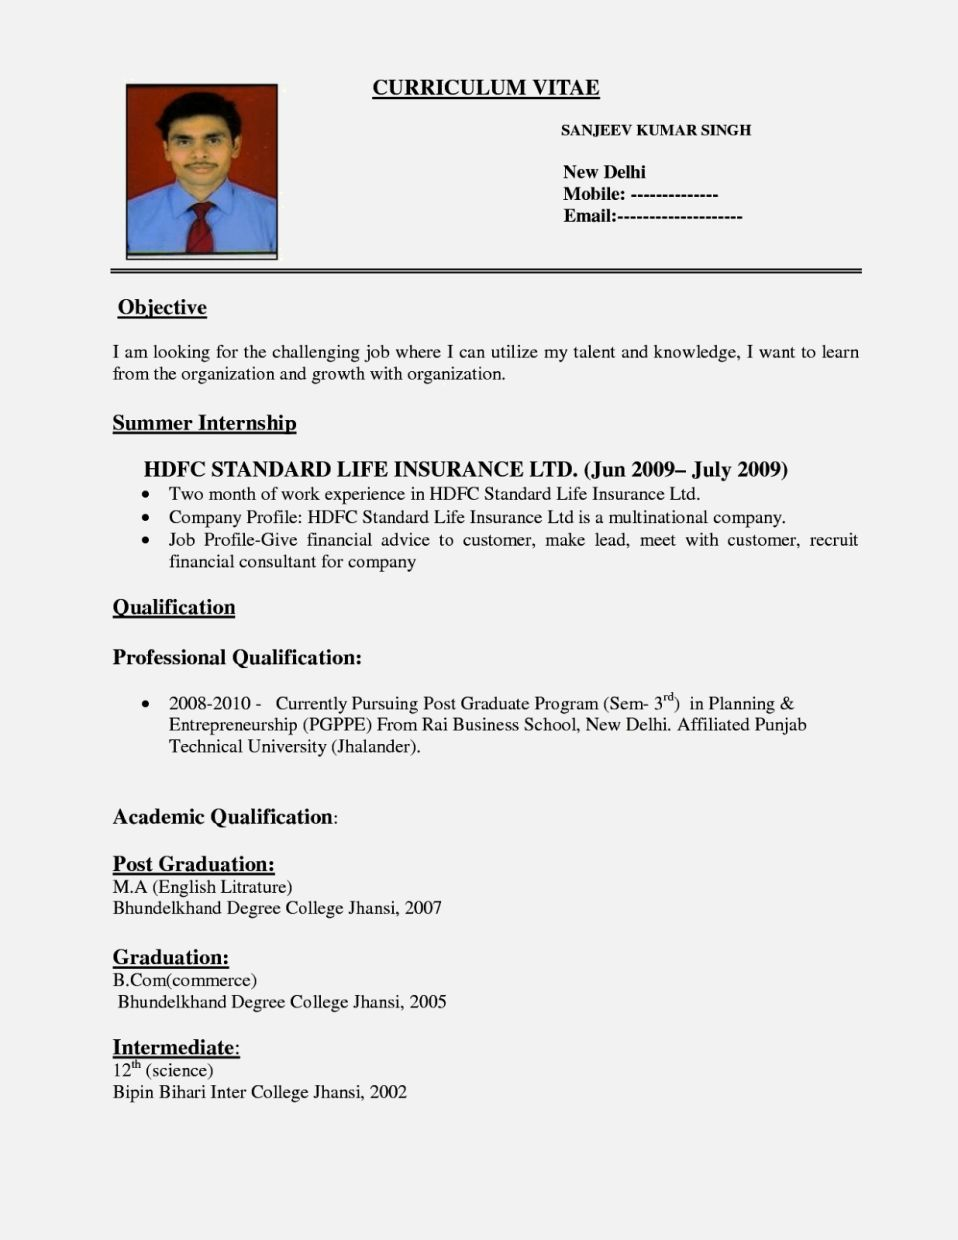 Resume Format For Hotel Management Fresher Pdf Check more